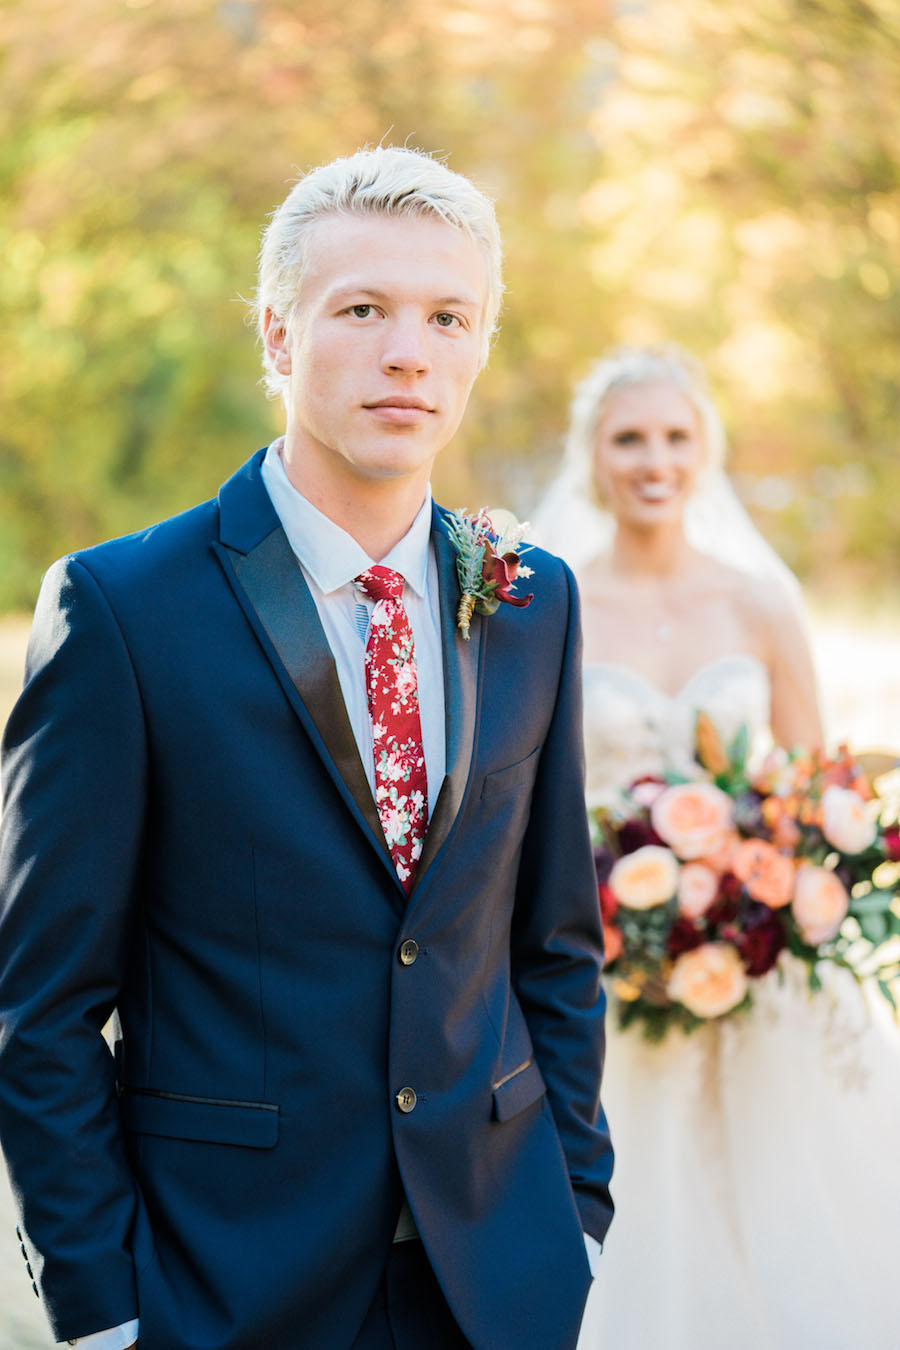 Vibrantly Rich Forest Editorial groom's suit with red tie